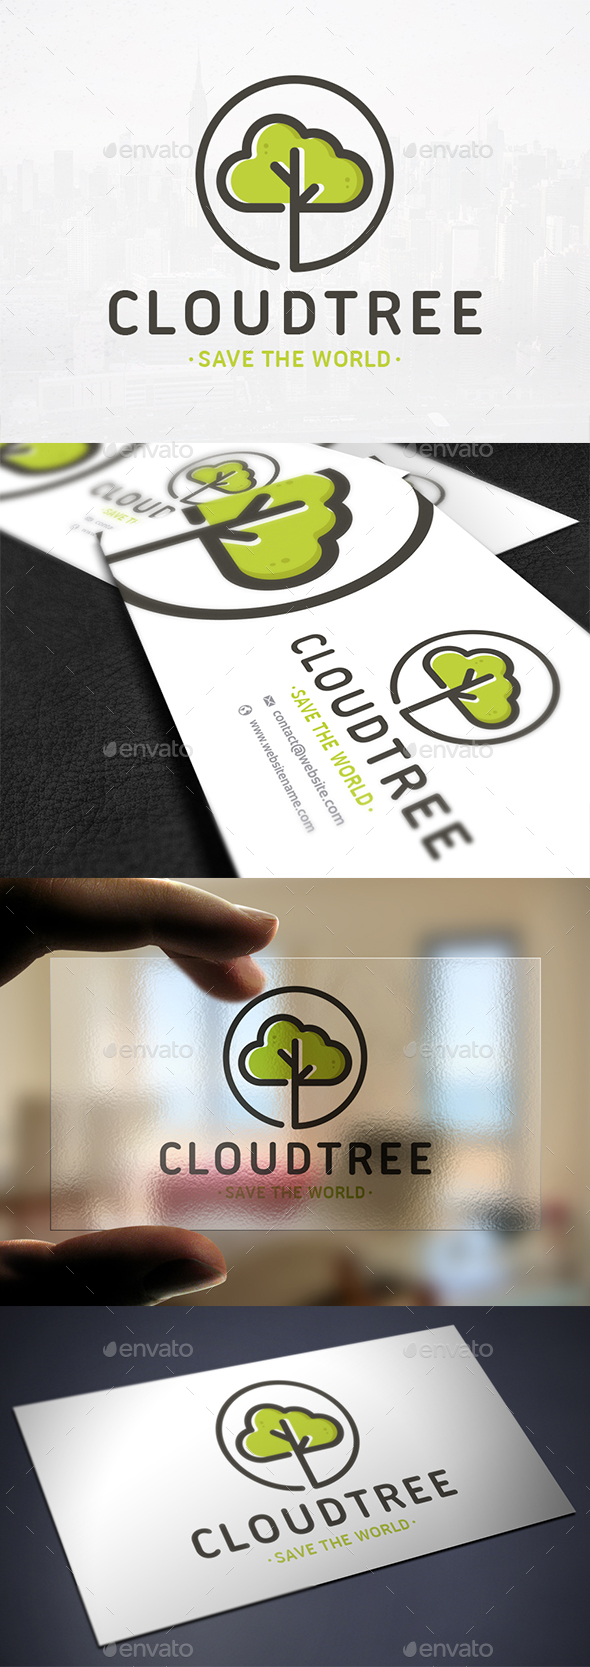 Cloud Tree Logo Template - Nature Logo Templates